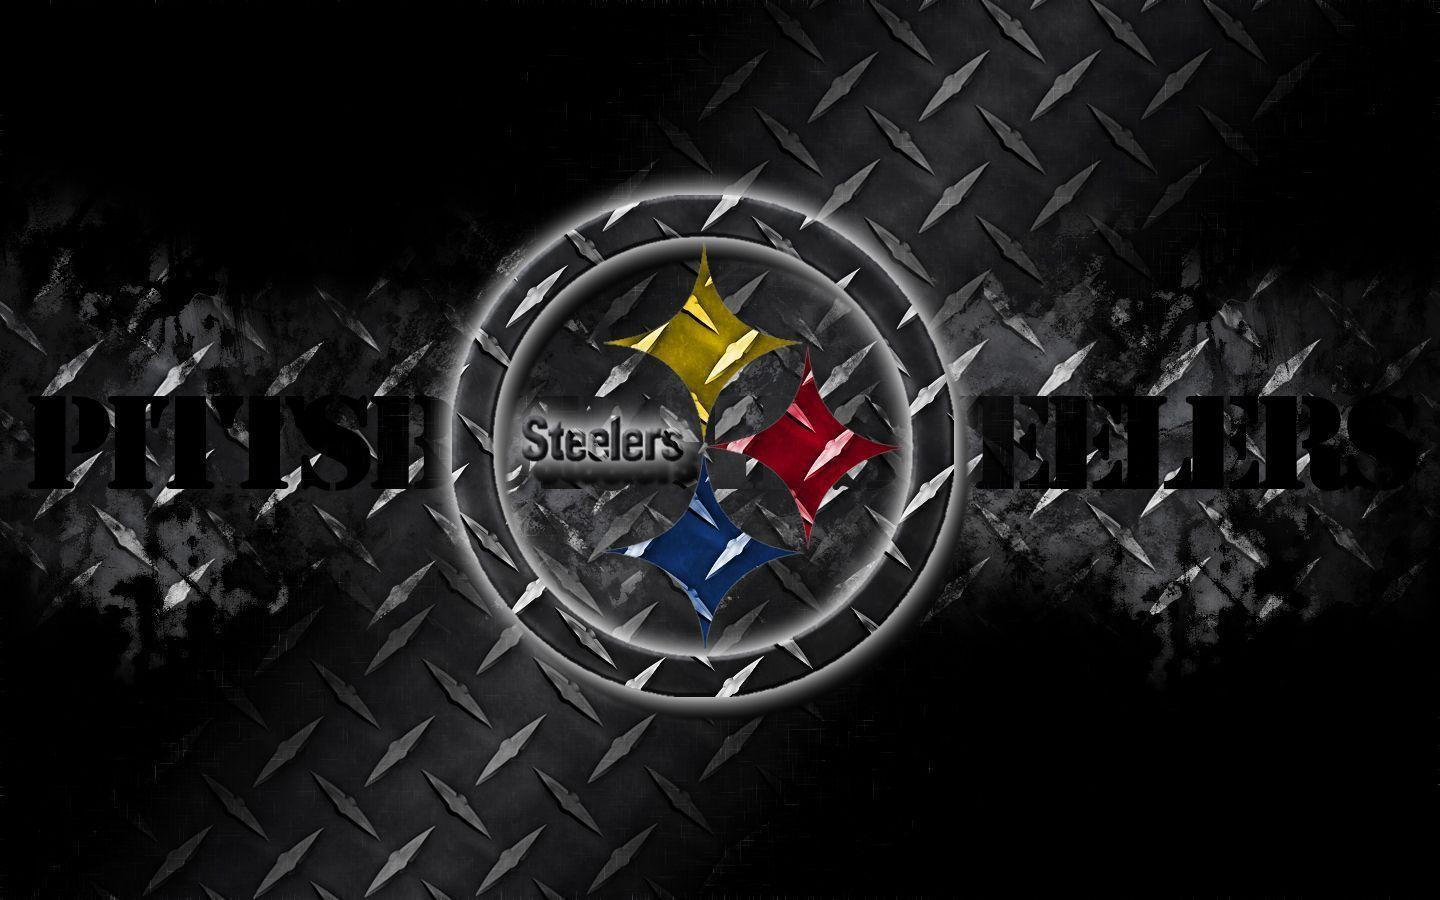 Steelers Wallpapers Pics K7N » WALLPAPERUN.COM